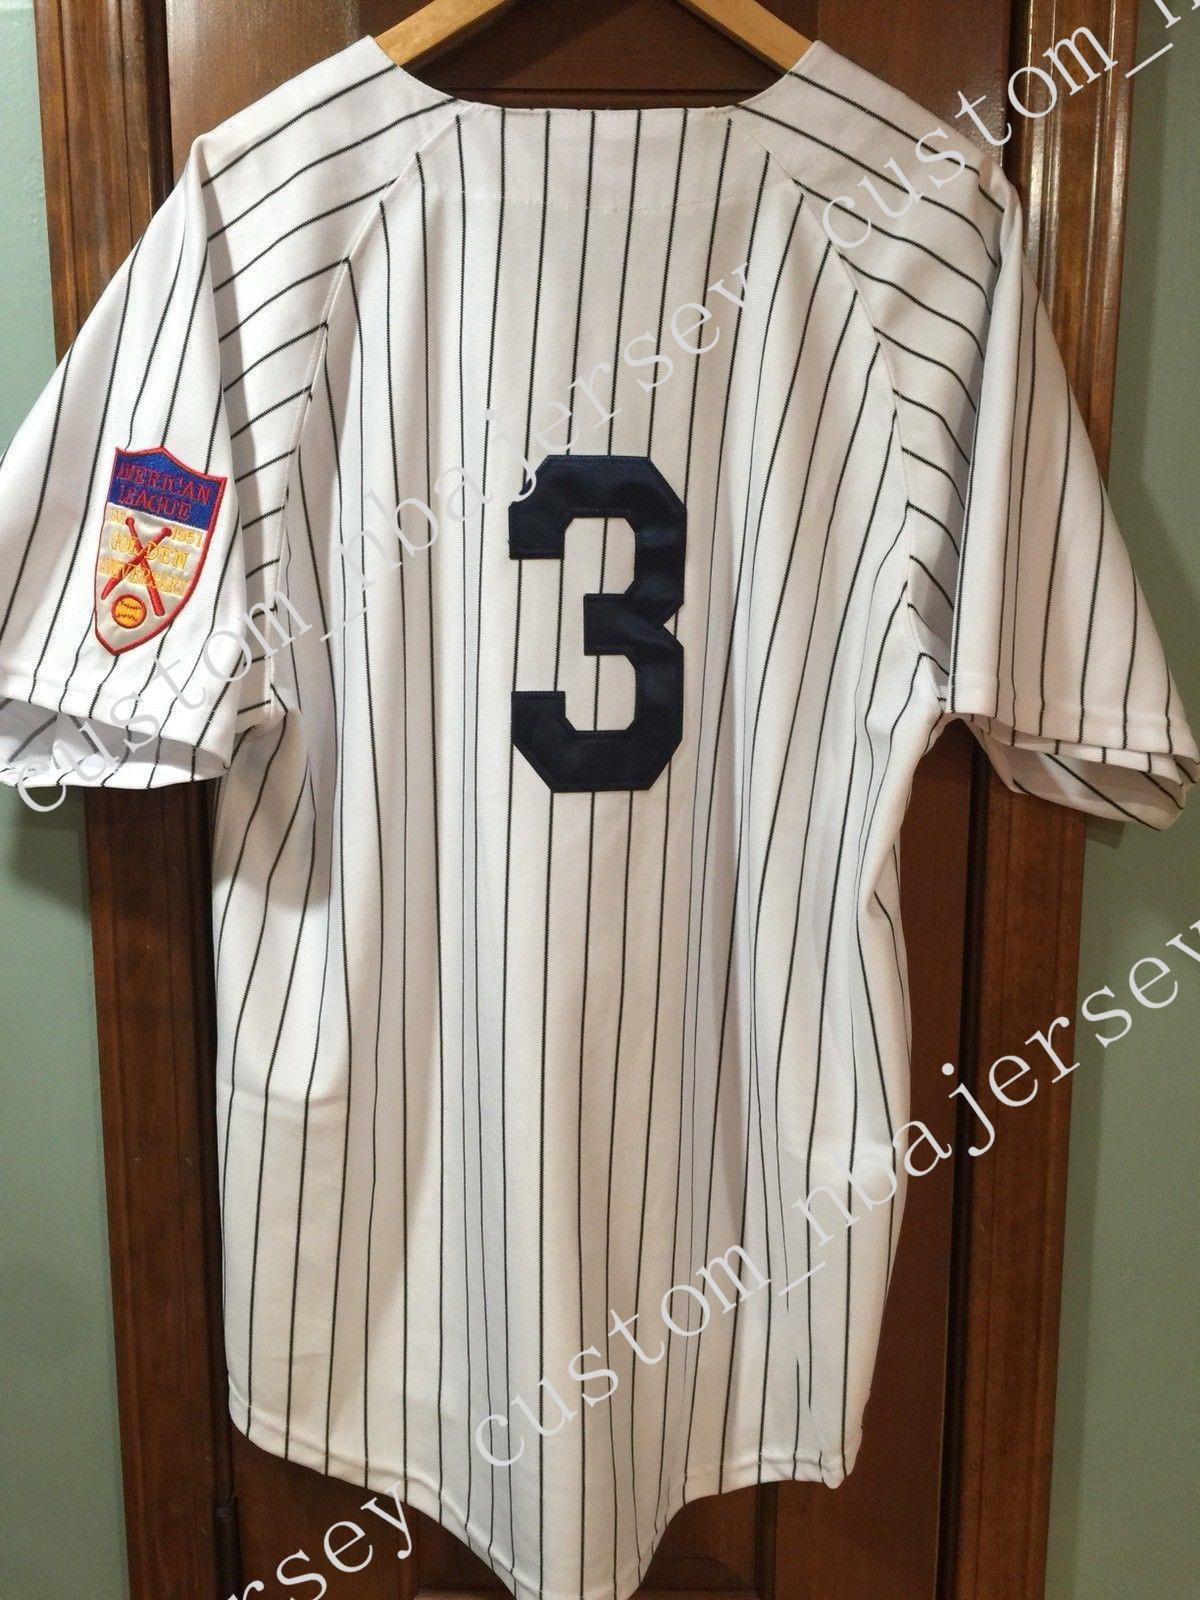 63516cabb95 2019 Cheap Custom Babe Ruth  3 Vintage Jersey W Patch Stitched Customize  Any Number Name MEN WOMEN YOUTH XS 5XL From Custom nbajersey